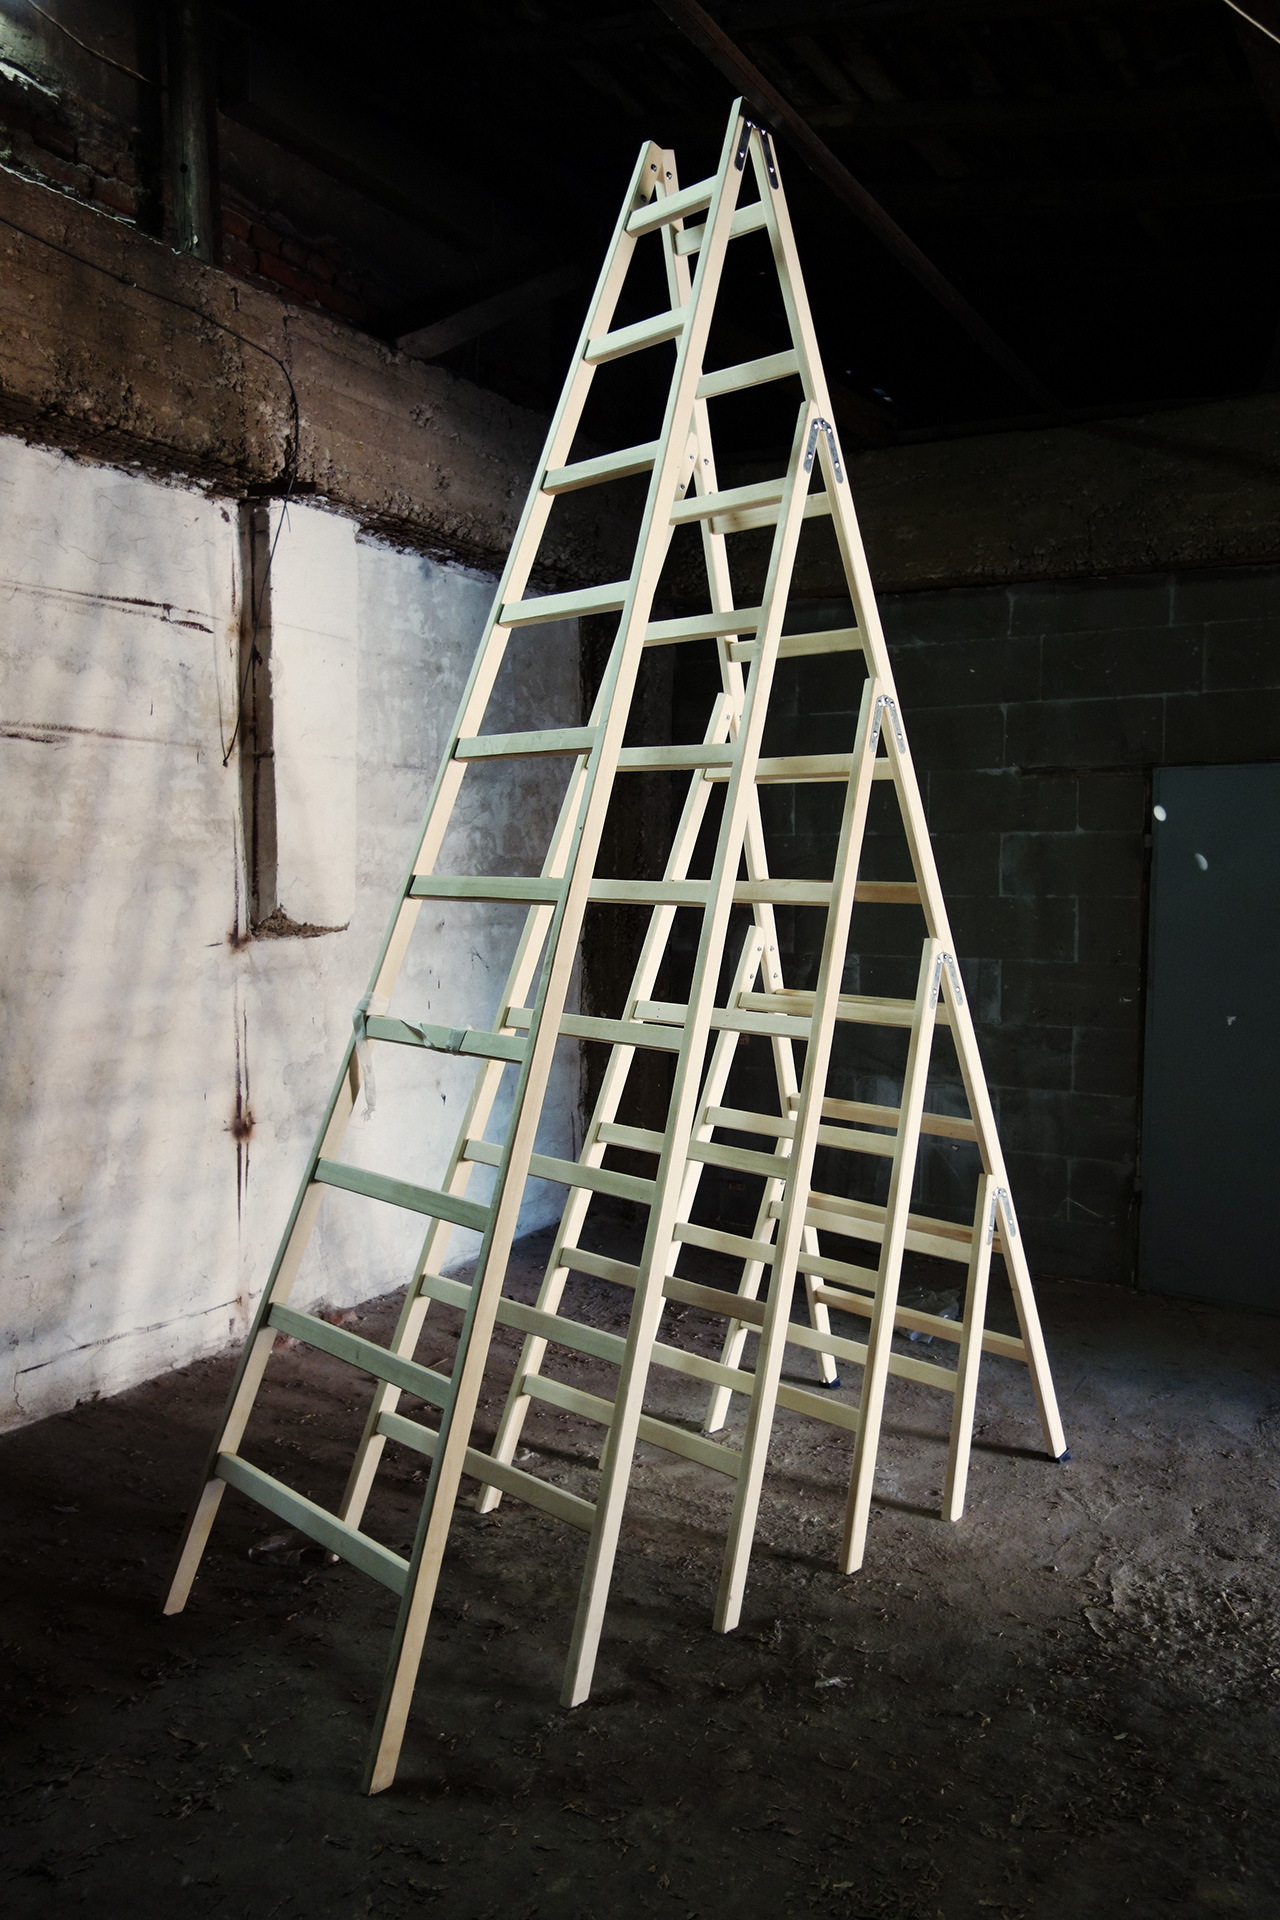 The Ladder, 2015